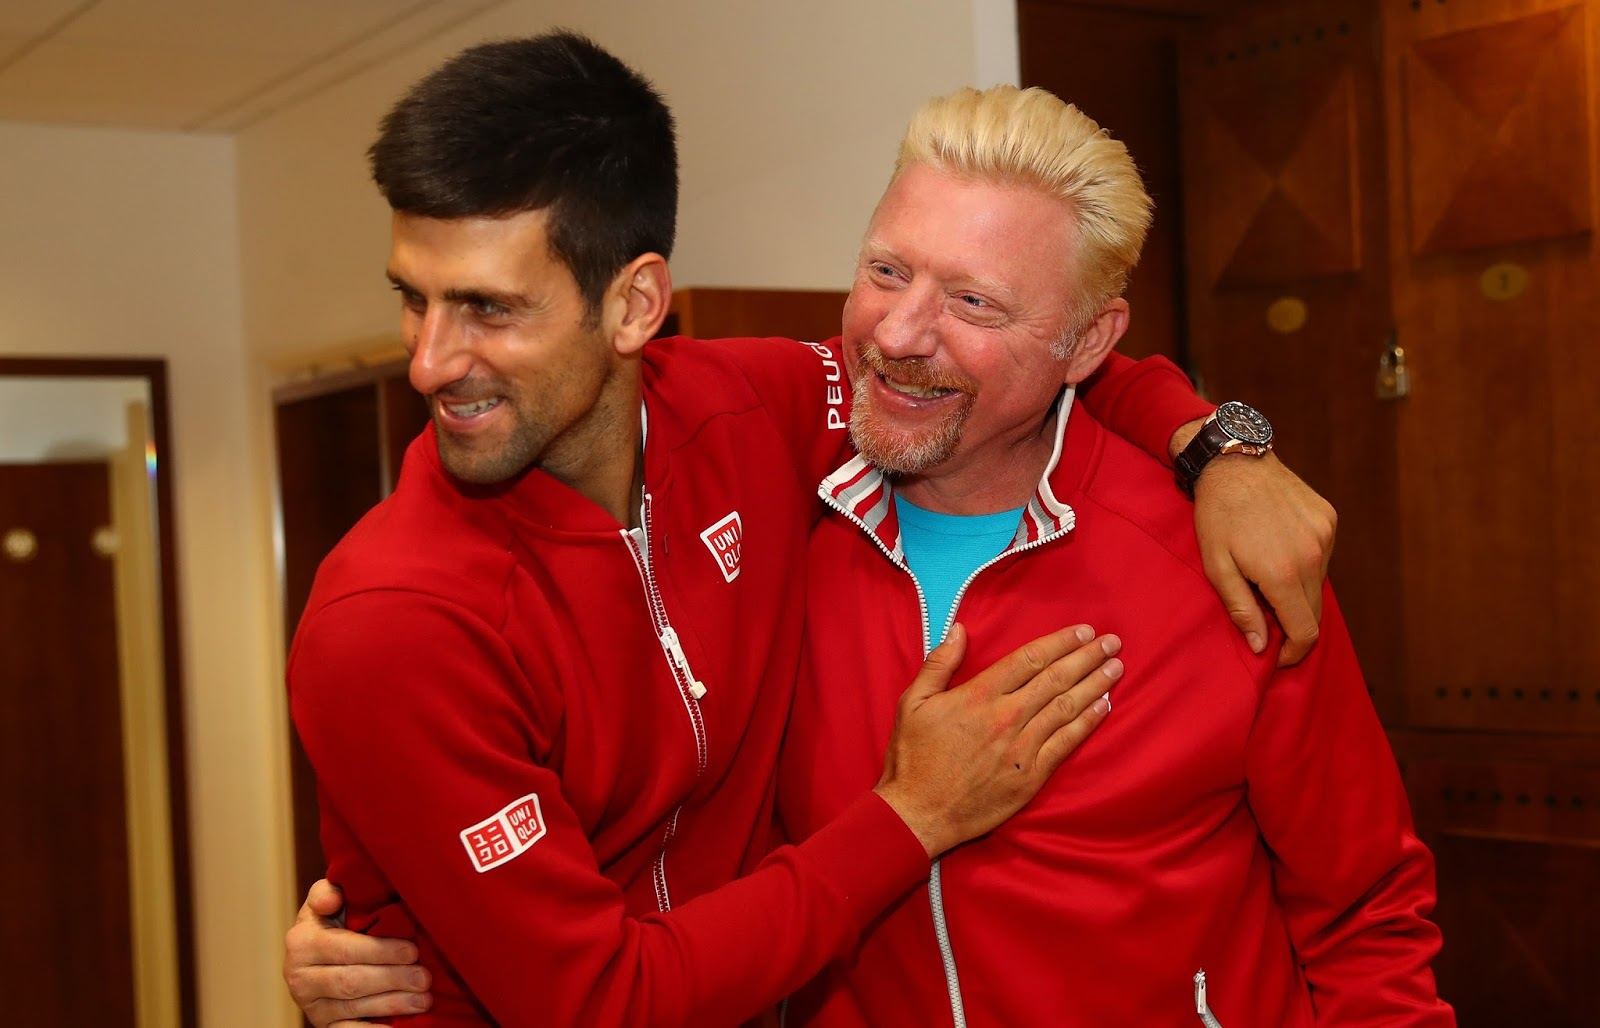 NOVAK DJOKOVIC, BORIS BECKER 7